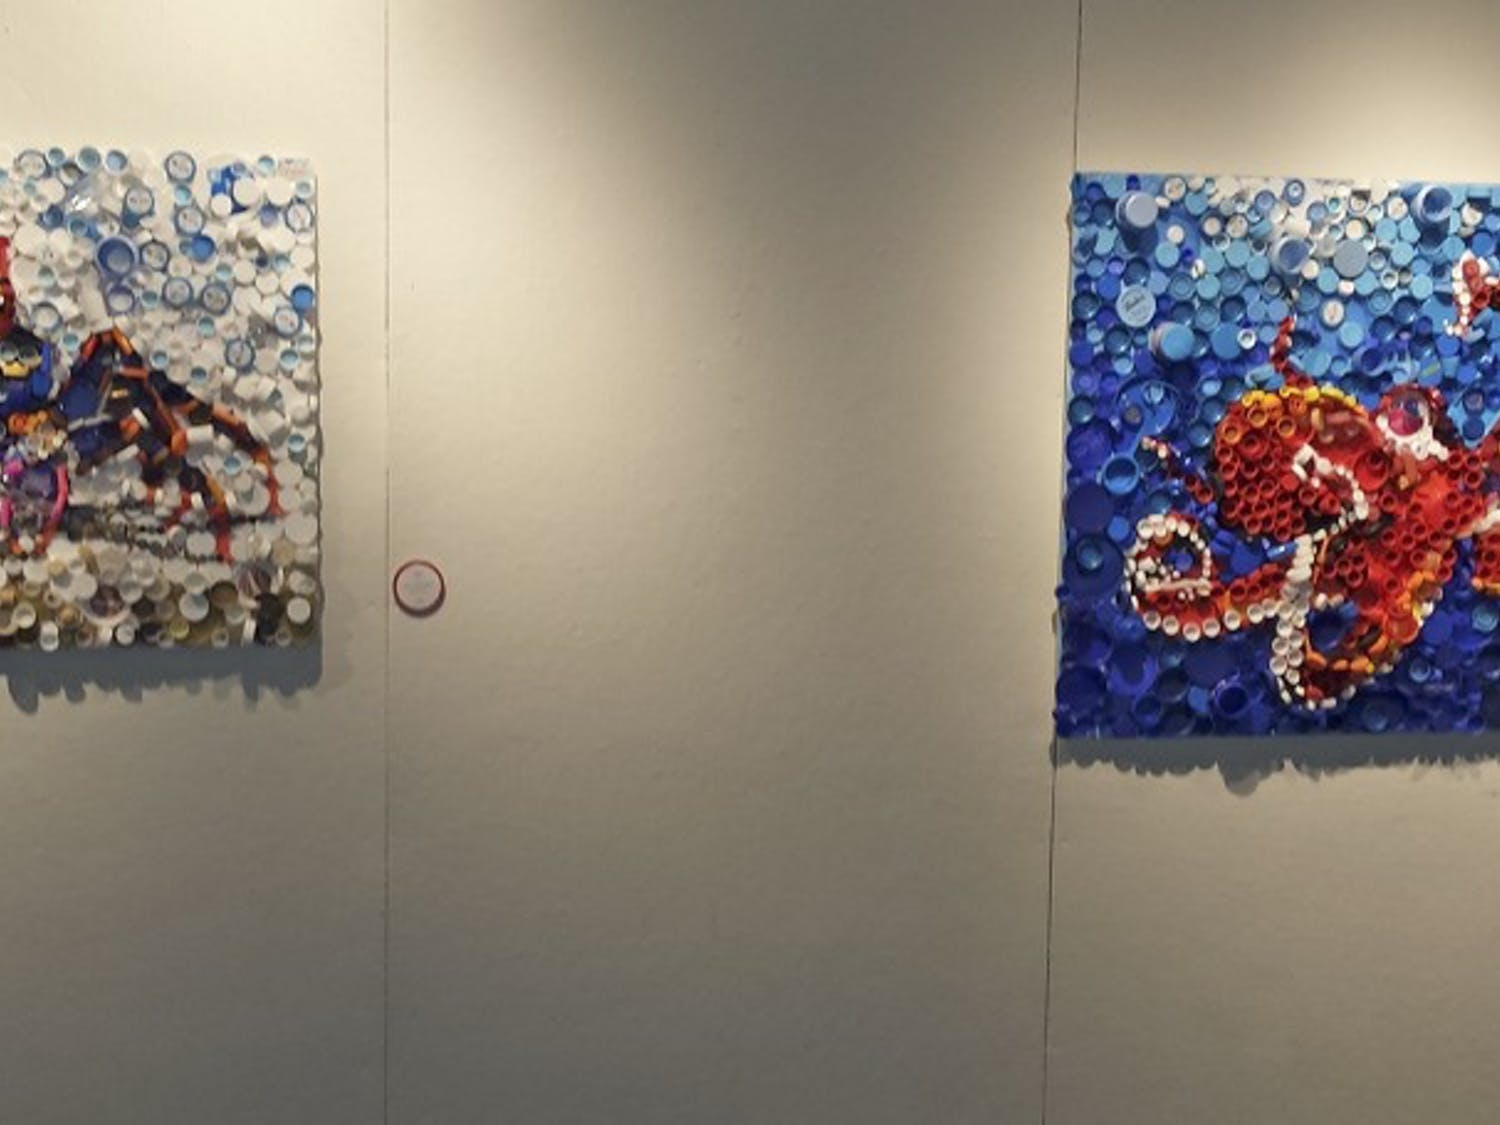 The Beauty through Toxicity art exhibit is currently on display in the Union.